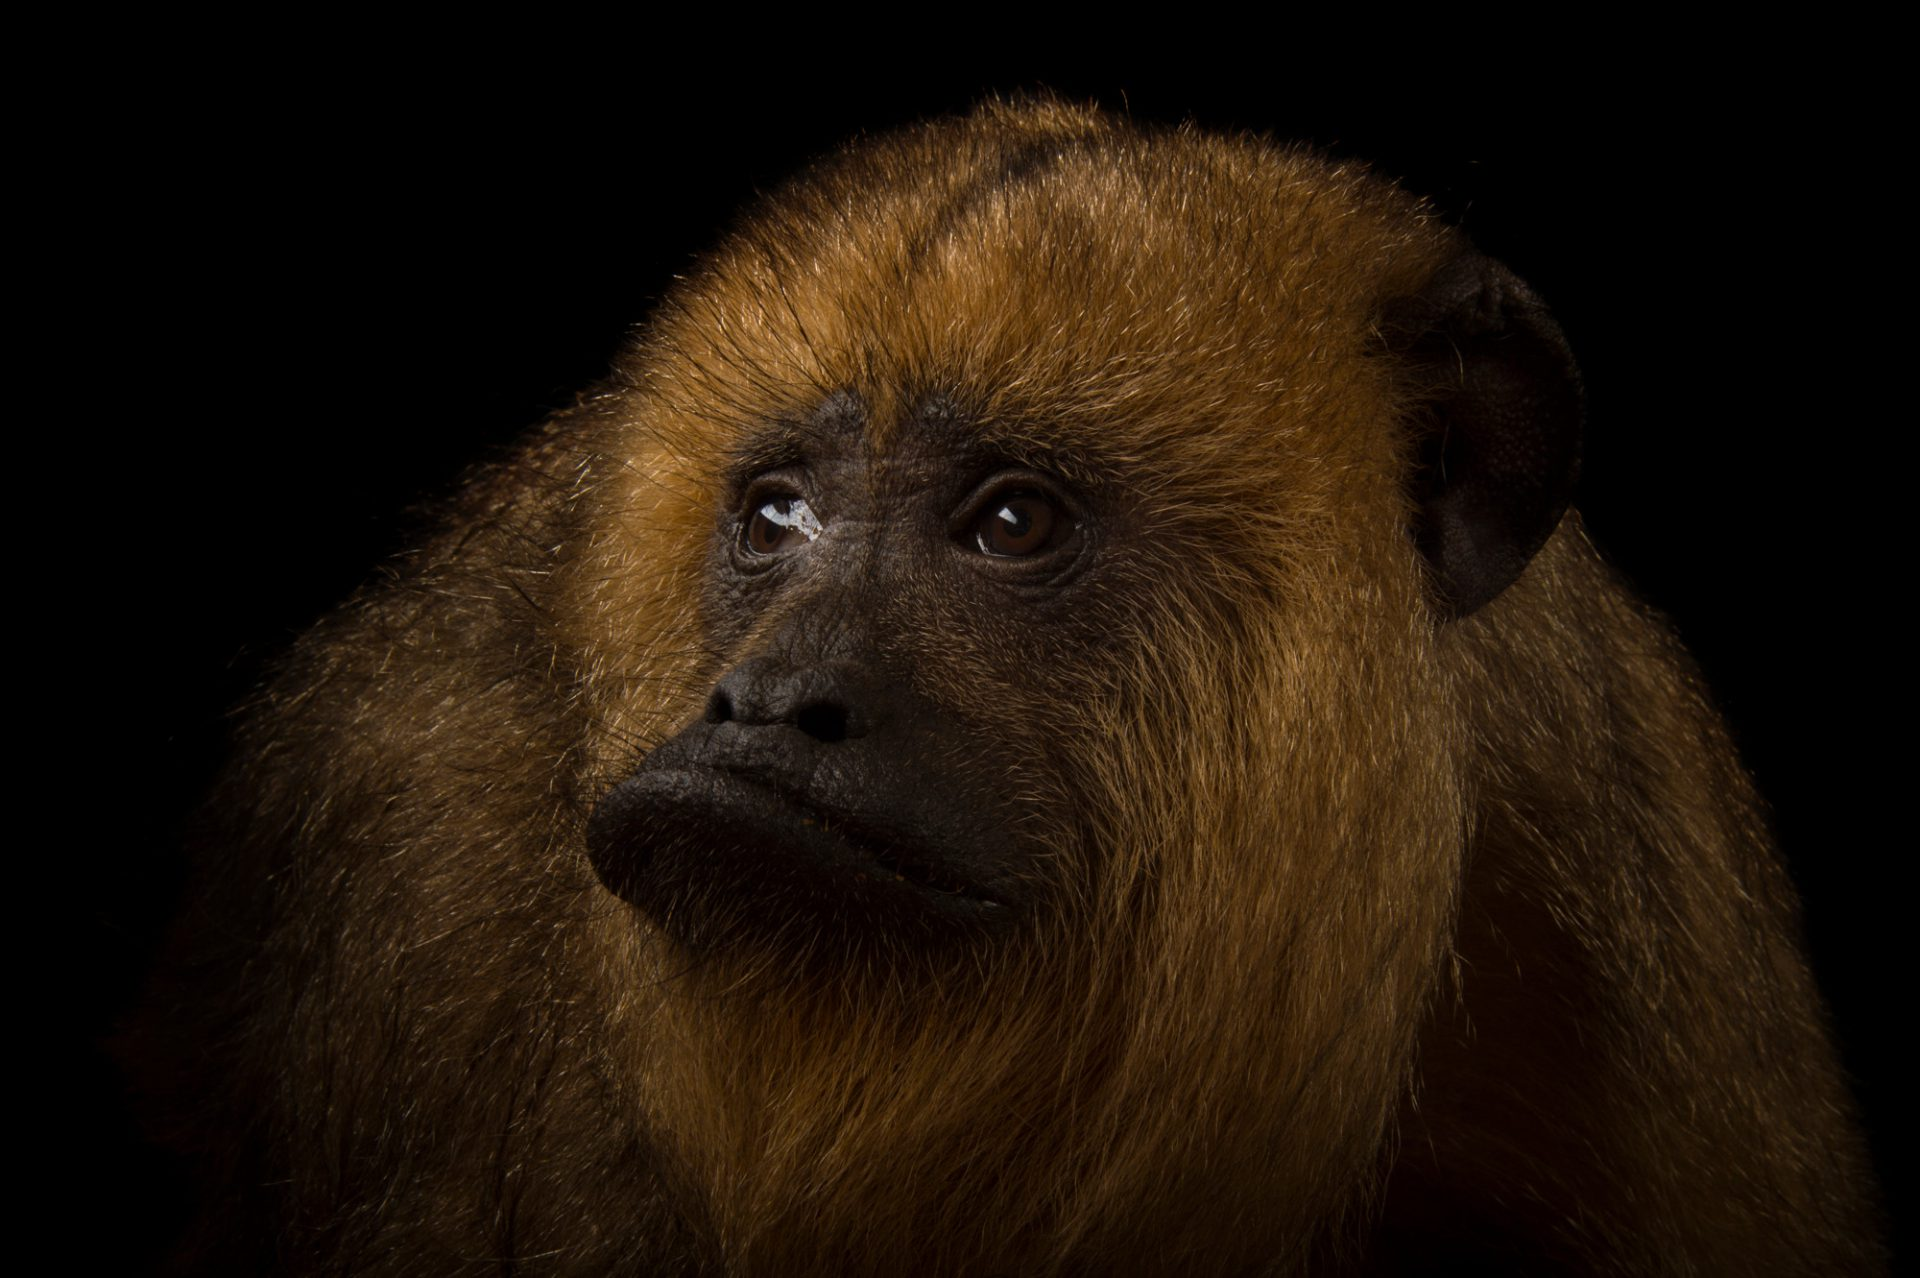 An endangered (IUCN) and federally threatened female Guatemalan black howler monkey named Pipi (Alouatta pigra) at the Omaha Zoo.